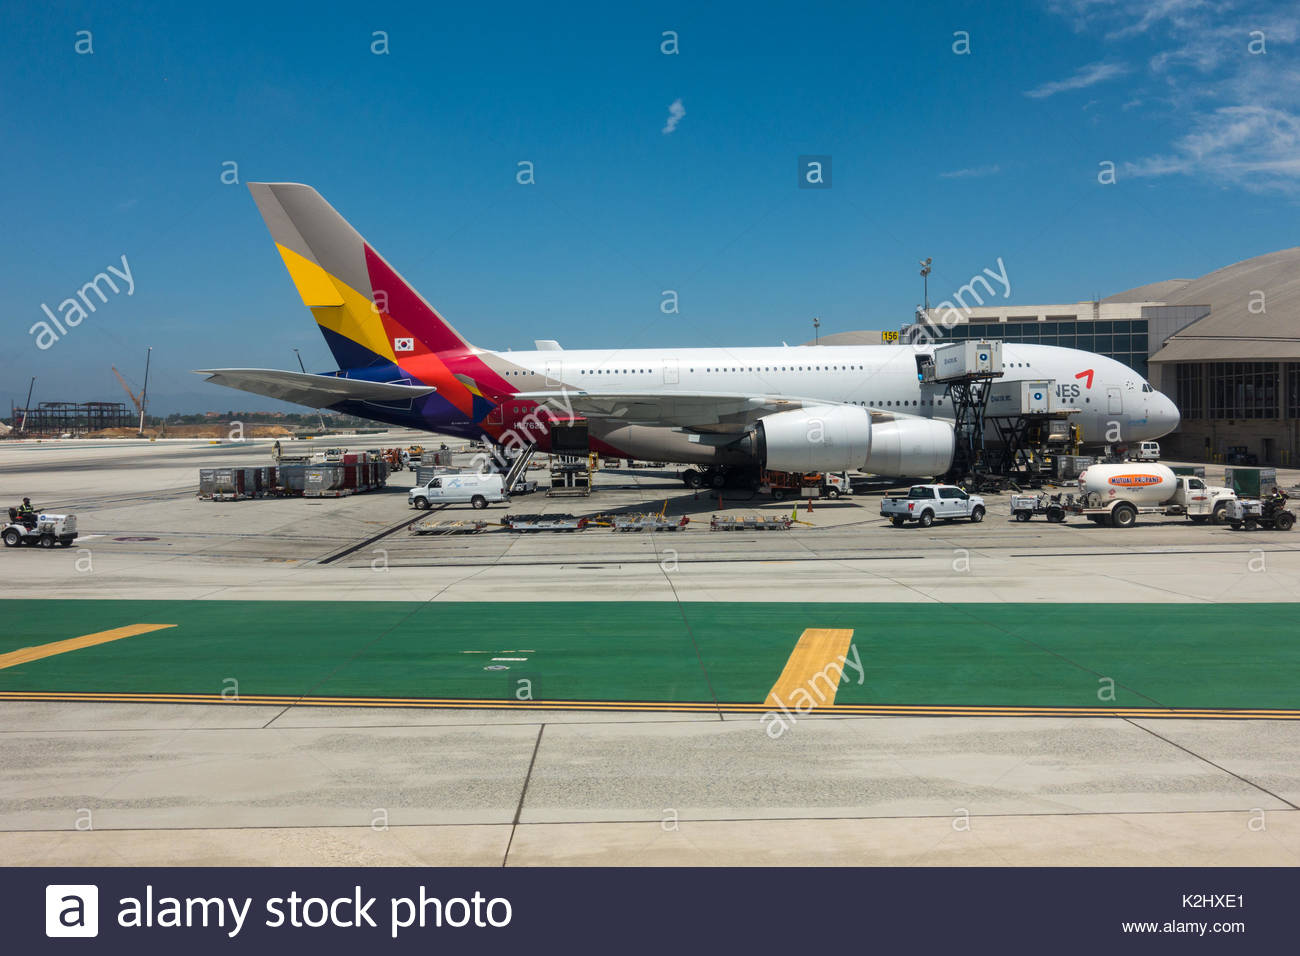 An Asiana Airlines Airbus A380 sits at the Bradley International Terminal of Los Angeles International Airport (LAX) - Stock Image